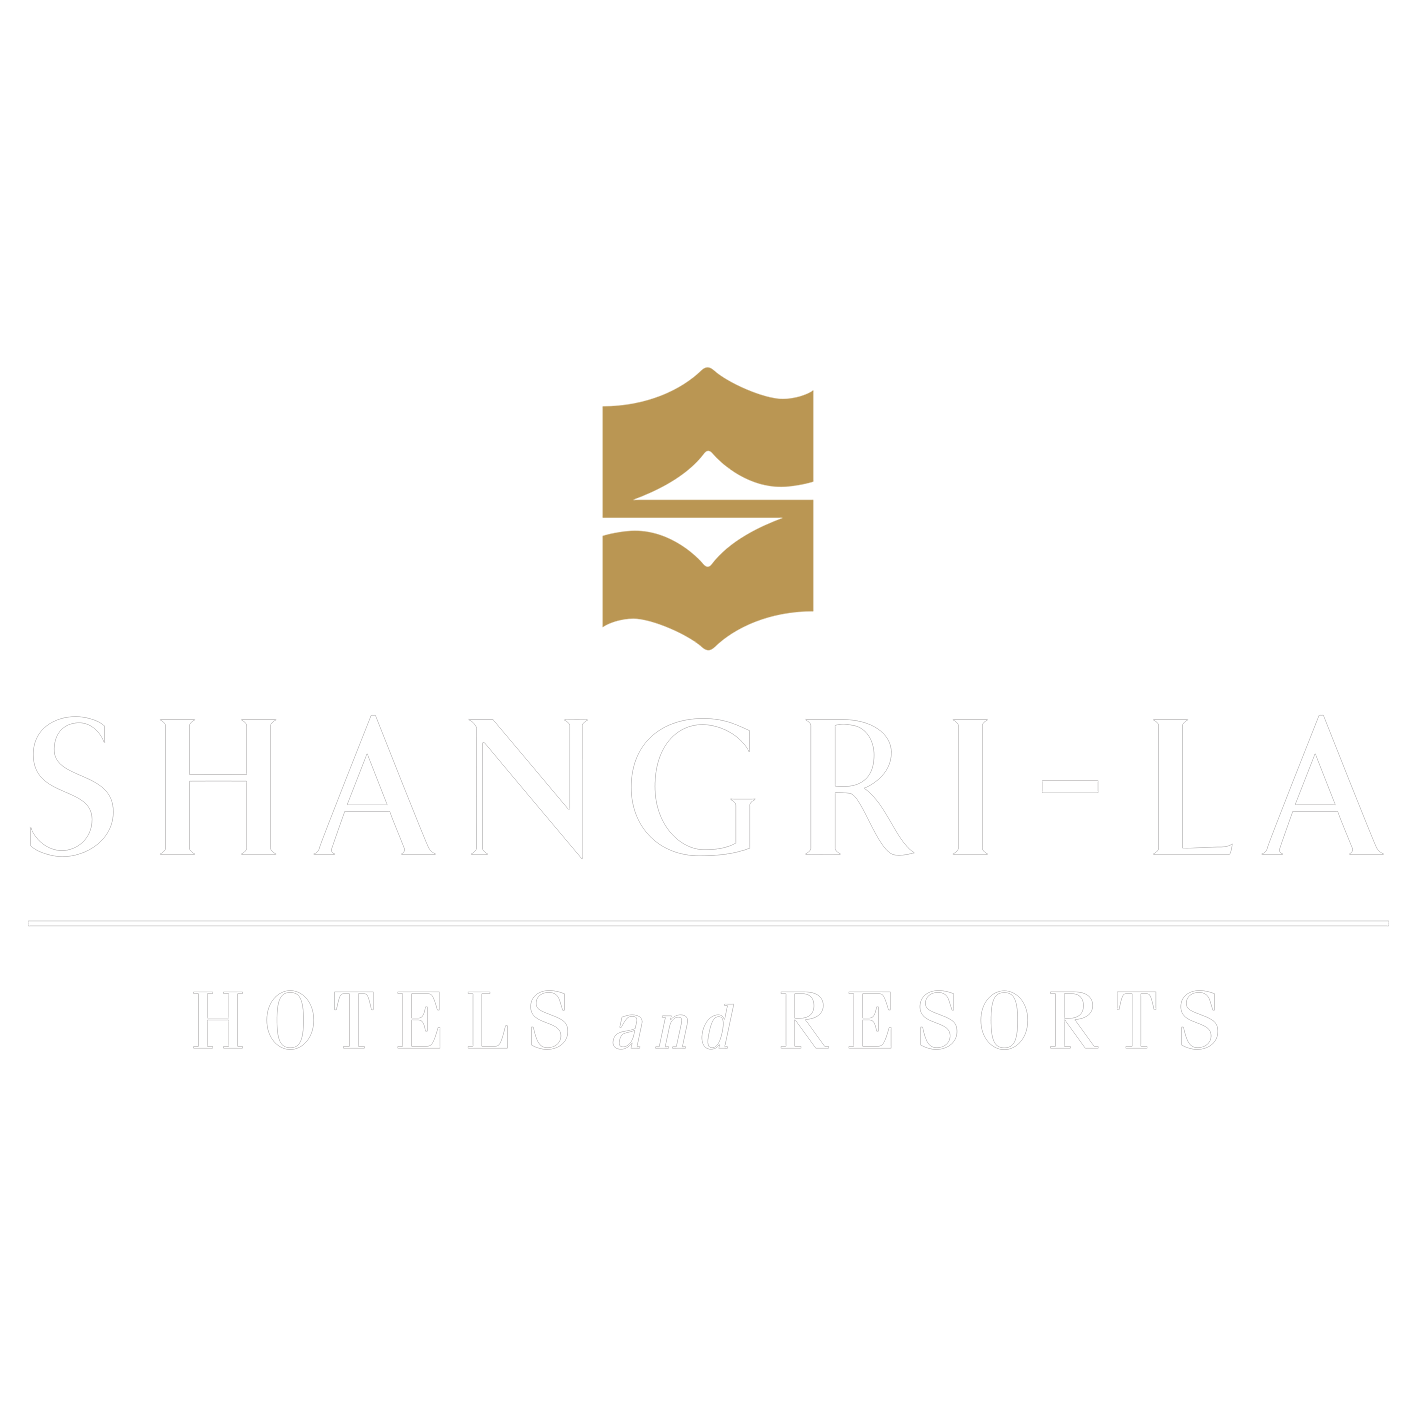 kisspng-four-seasons-hotels-and-resorts-shangri-la-hotels-shangrila-hotels-and-resorts-white